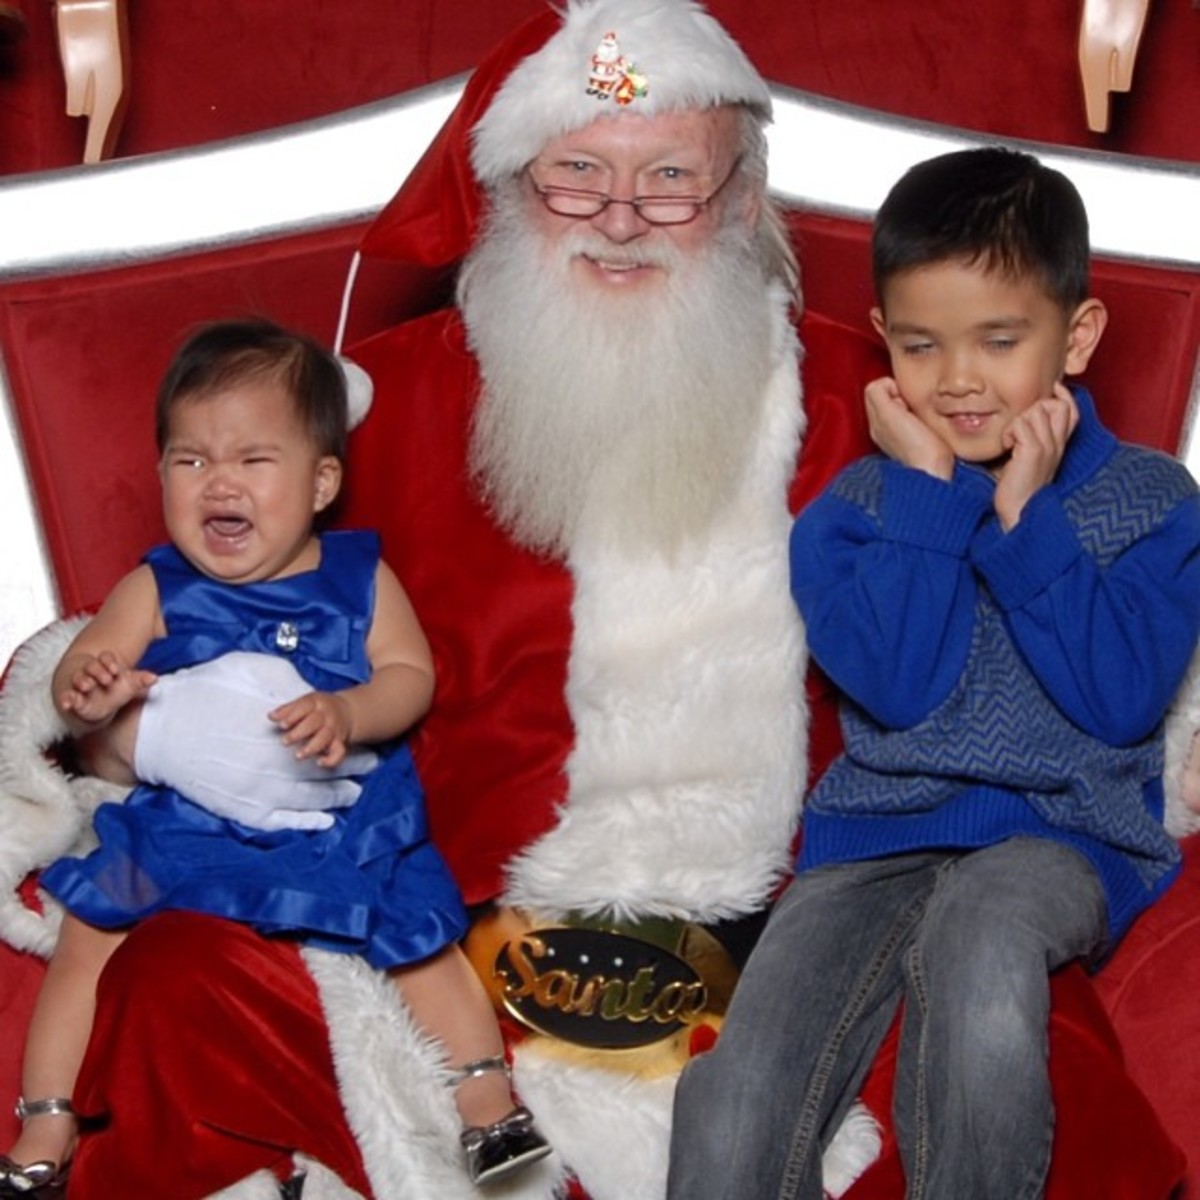 The older brother's expression is priceless, and Santa is taking pride in the terror he is inflicting.  Does Santa have a dark soul?